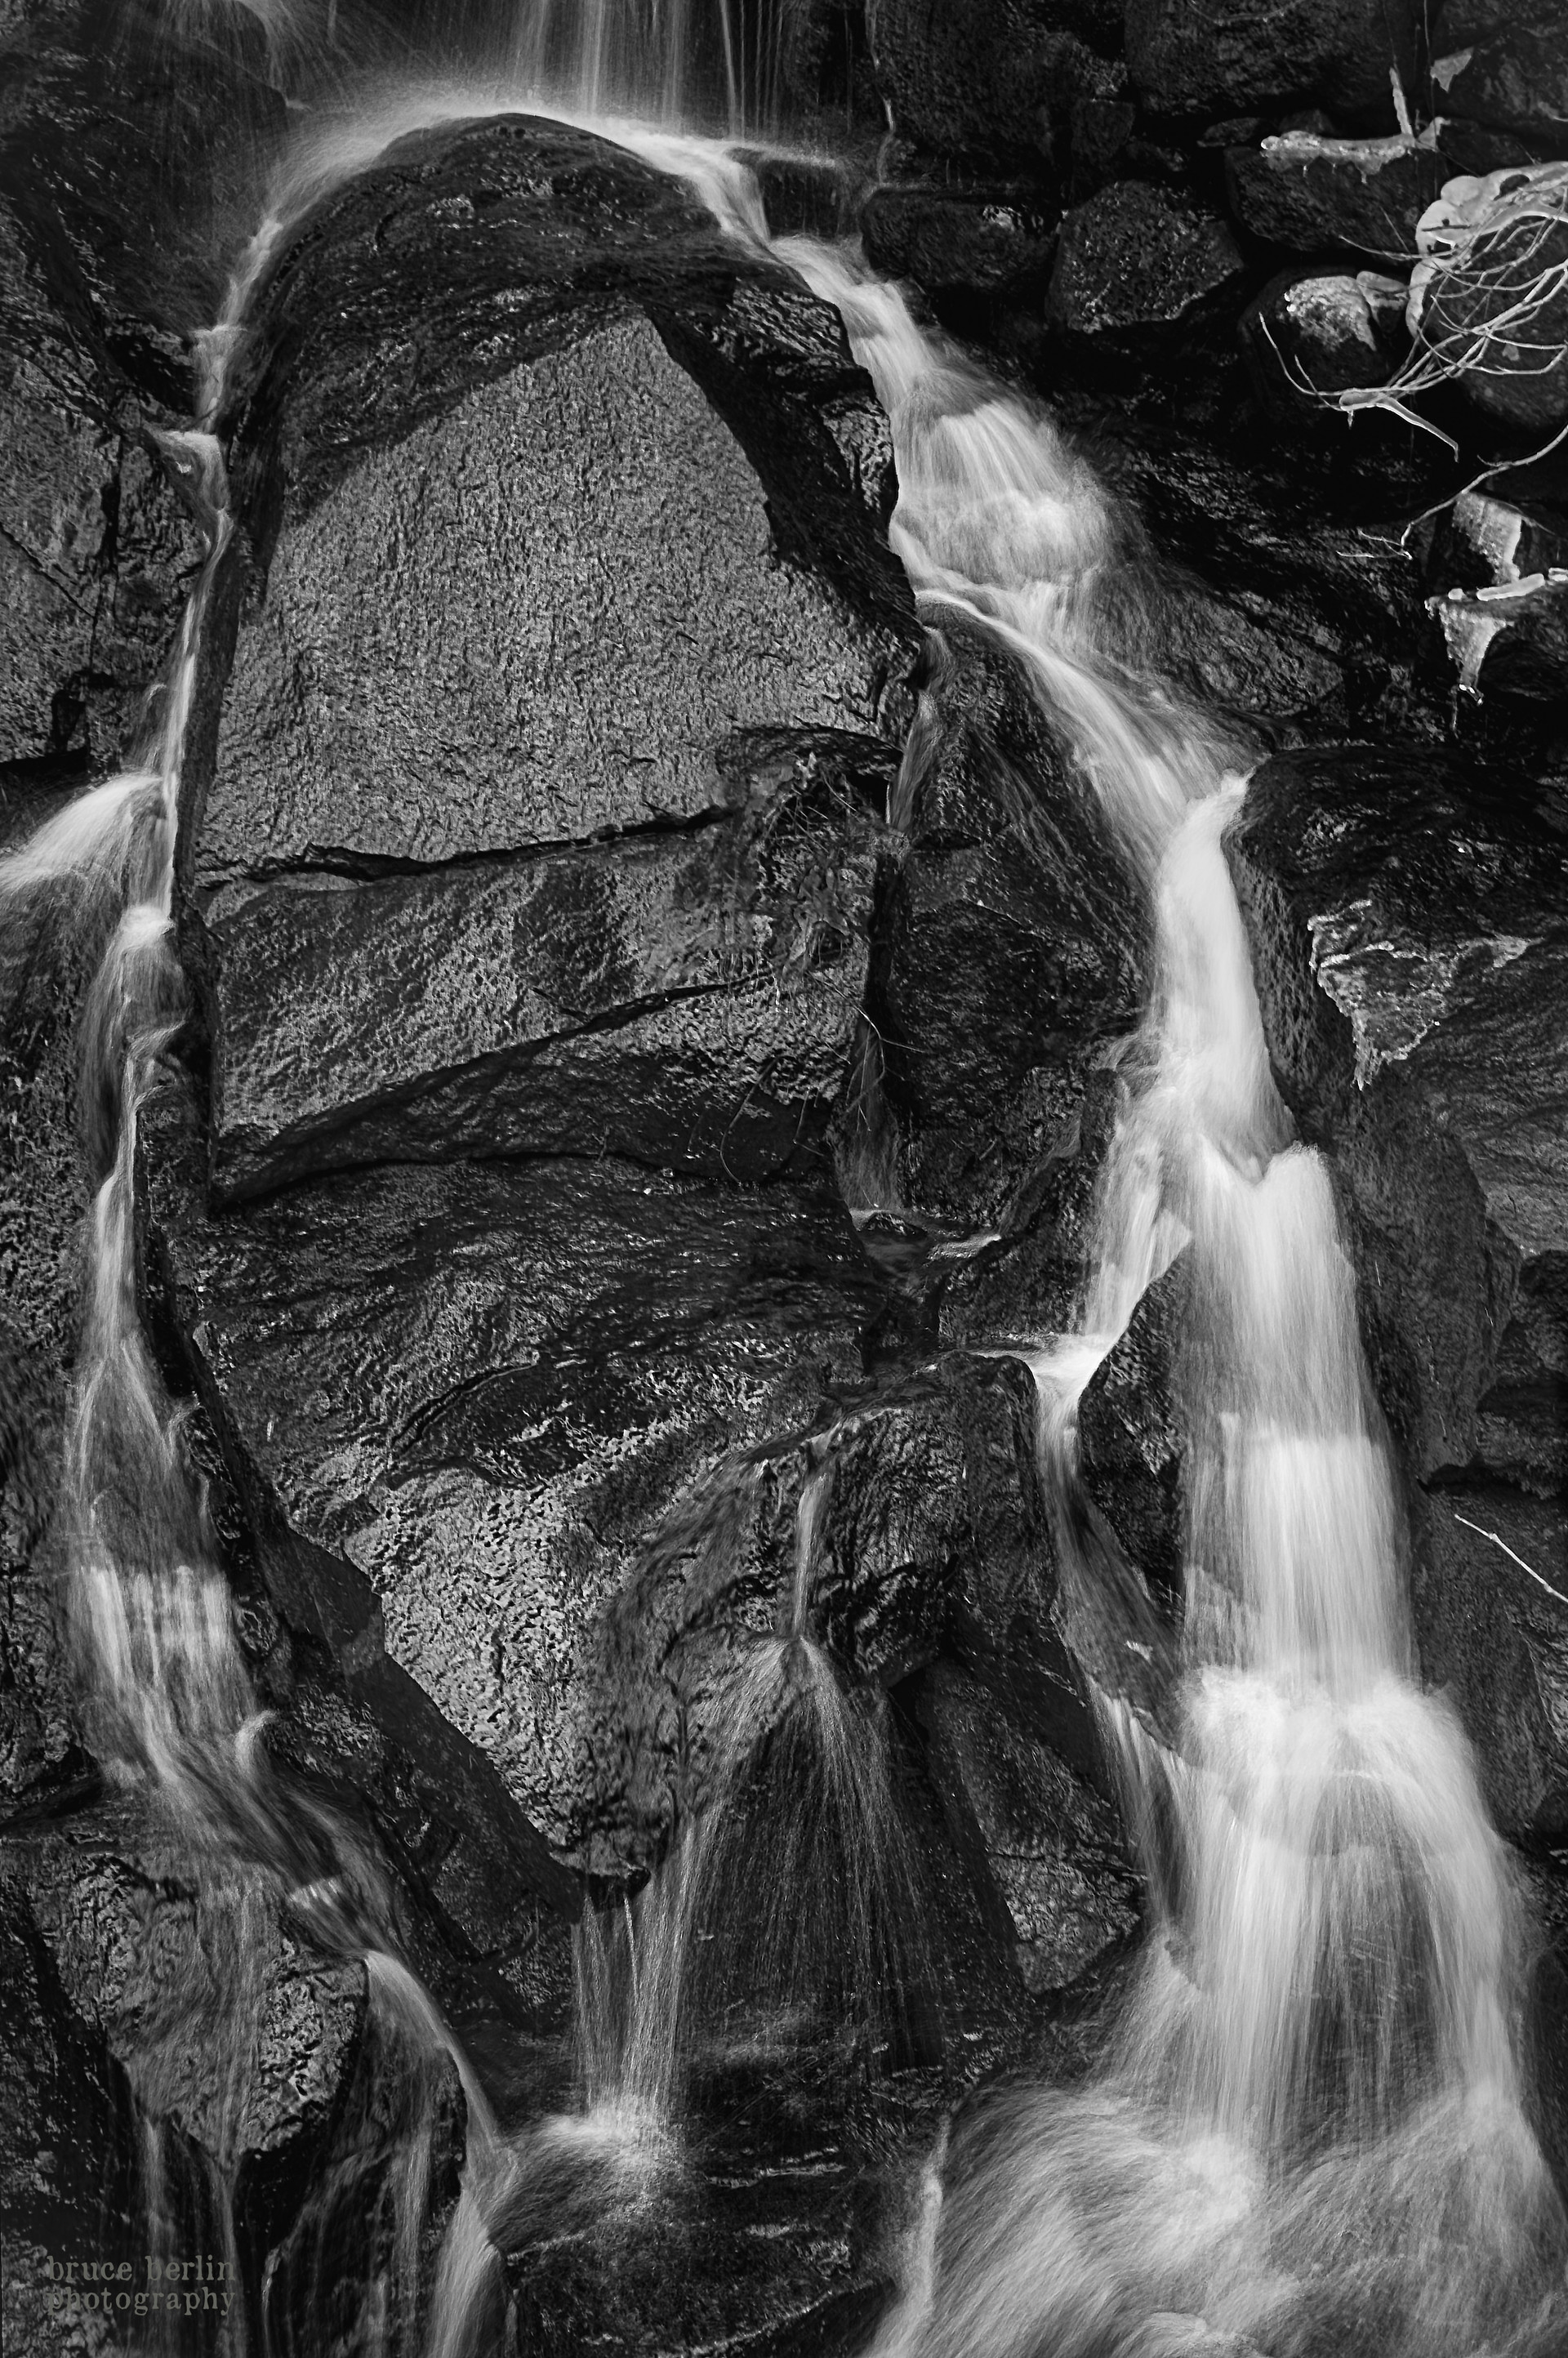 End of the Waterfall (1 of 1).jpg